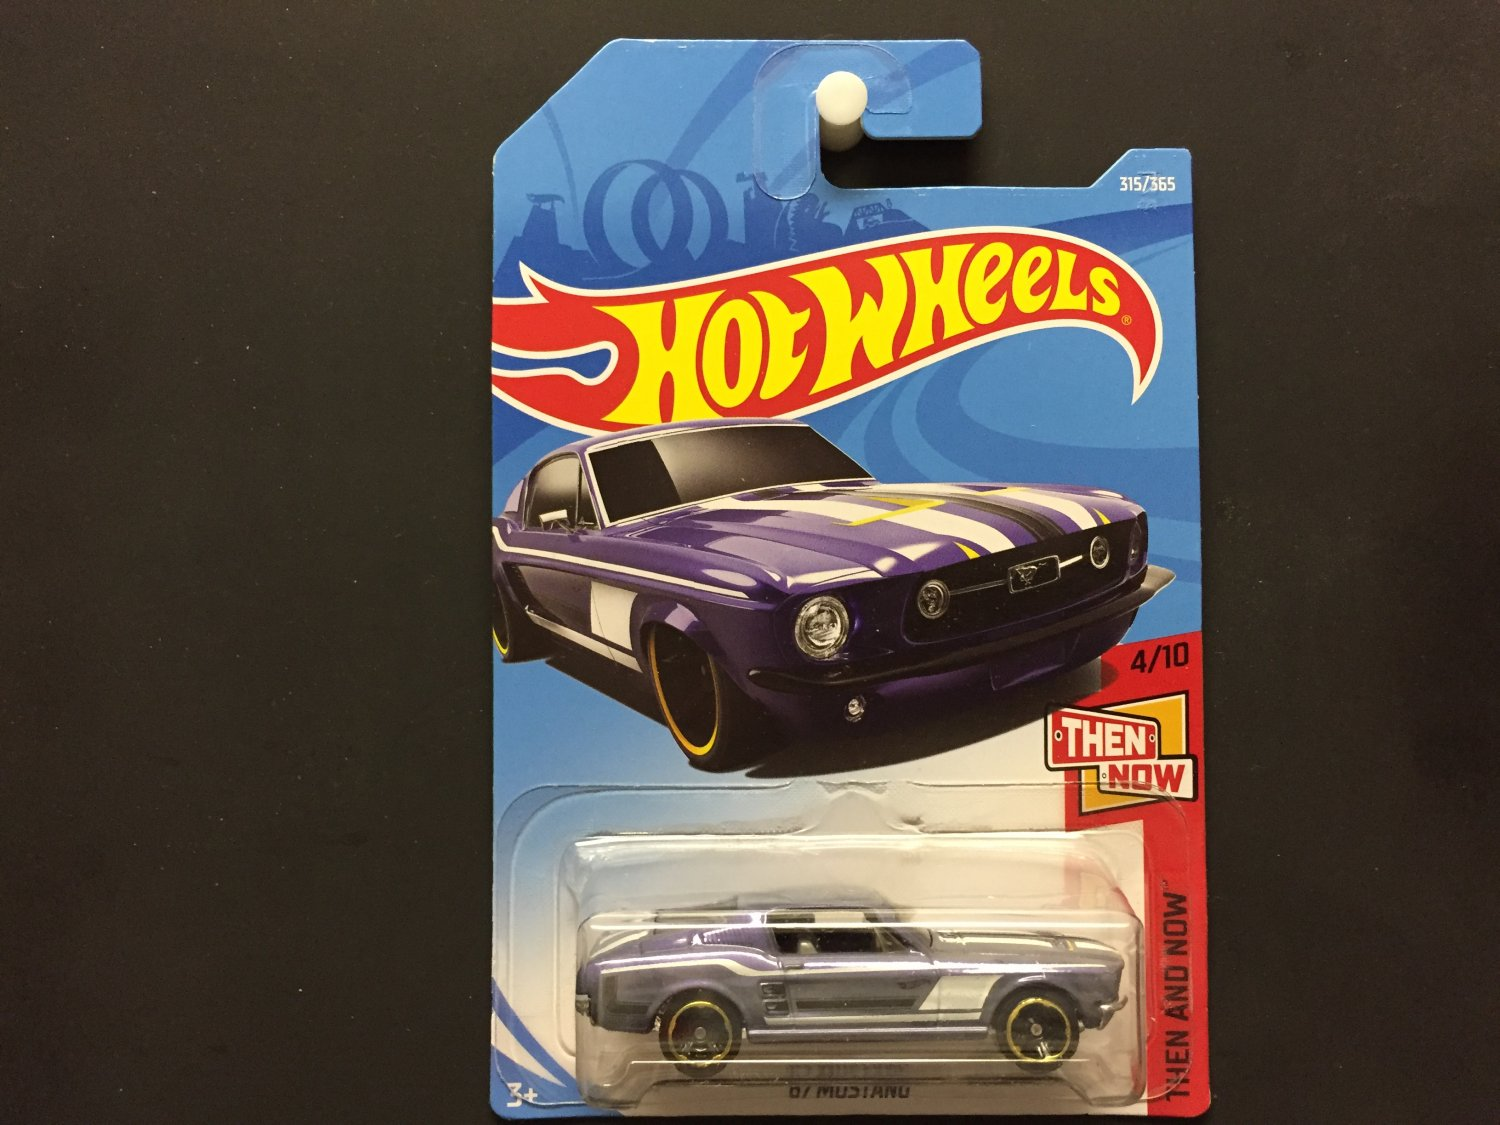 2018 Hot Wheels '67 Mustang (Blue) Then And Now 4/10